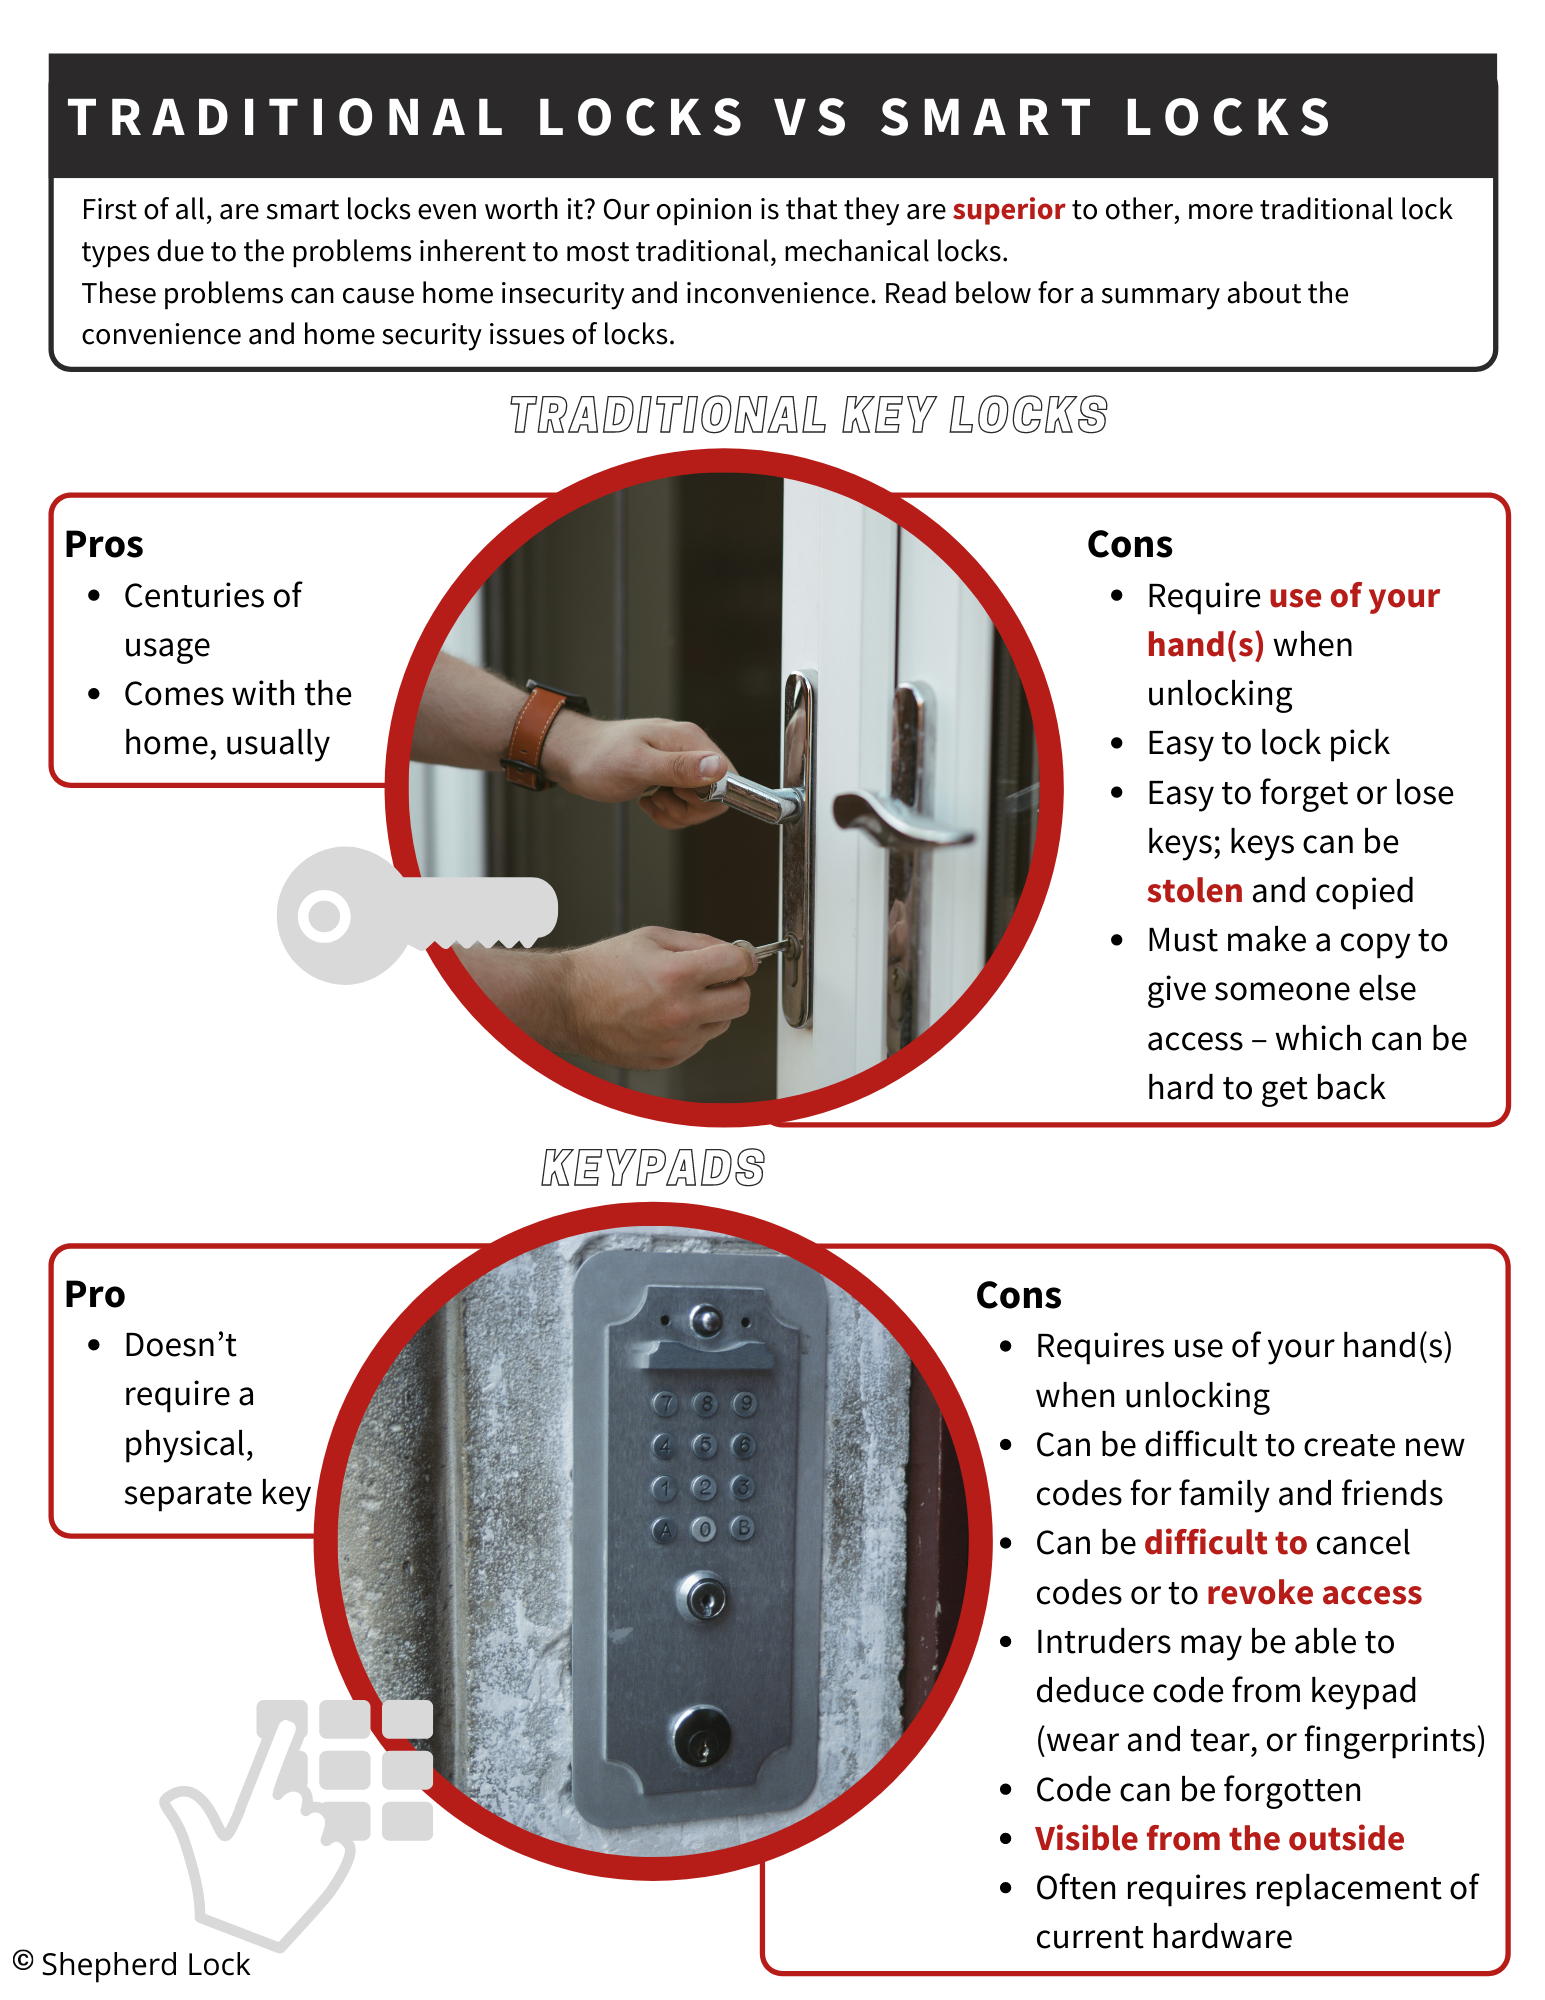 Traditional Locks vs Smart Locks. First of all, are smart locks even worth it? Our opinion is that they are superior to other, more traditional lock types due to the problems inherent to most traditional, mechanical locks.  These problems can cause home insecurity and inconvenience. Read below for a summary about the convenience and home security issues of locks. Traditional Key Locks - Pros: Centuries of usage; Comes with the home, usually. Cons: Require use of your hand(s) when unlocking; Easy to lock pick; Easy to forget or lose keys (keys can be stolen and copied); Must make a copy to give someone else access – which can be hard to get back. Keypads - Pro: Doesn't require a physical, separate key. Cons: Requires use of your hand(s) when unlocking; Can be difficult to create new codes for family and friends; Can be difficult to cancel codes or to revoke access; Intruders may be able to deduce code from keypad (wear and tear, or fingerprints); Code can be forgotten; Visible from the outside; Often requires replacement of current hardware